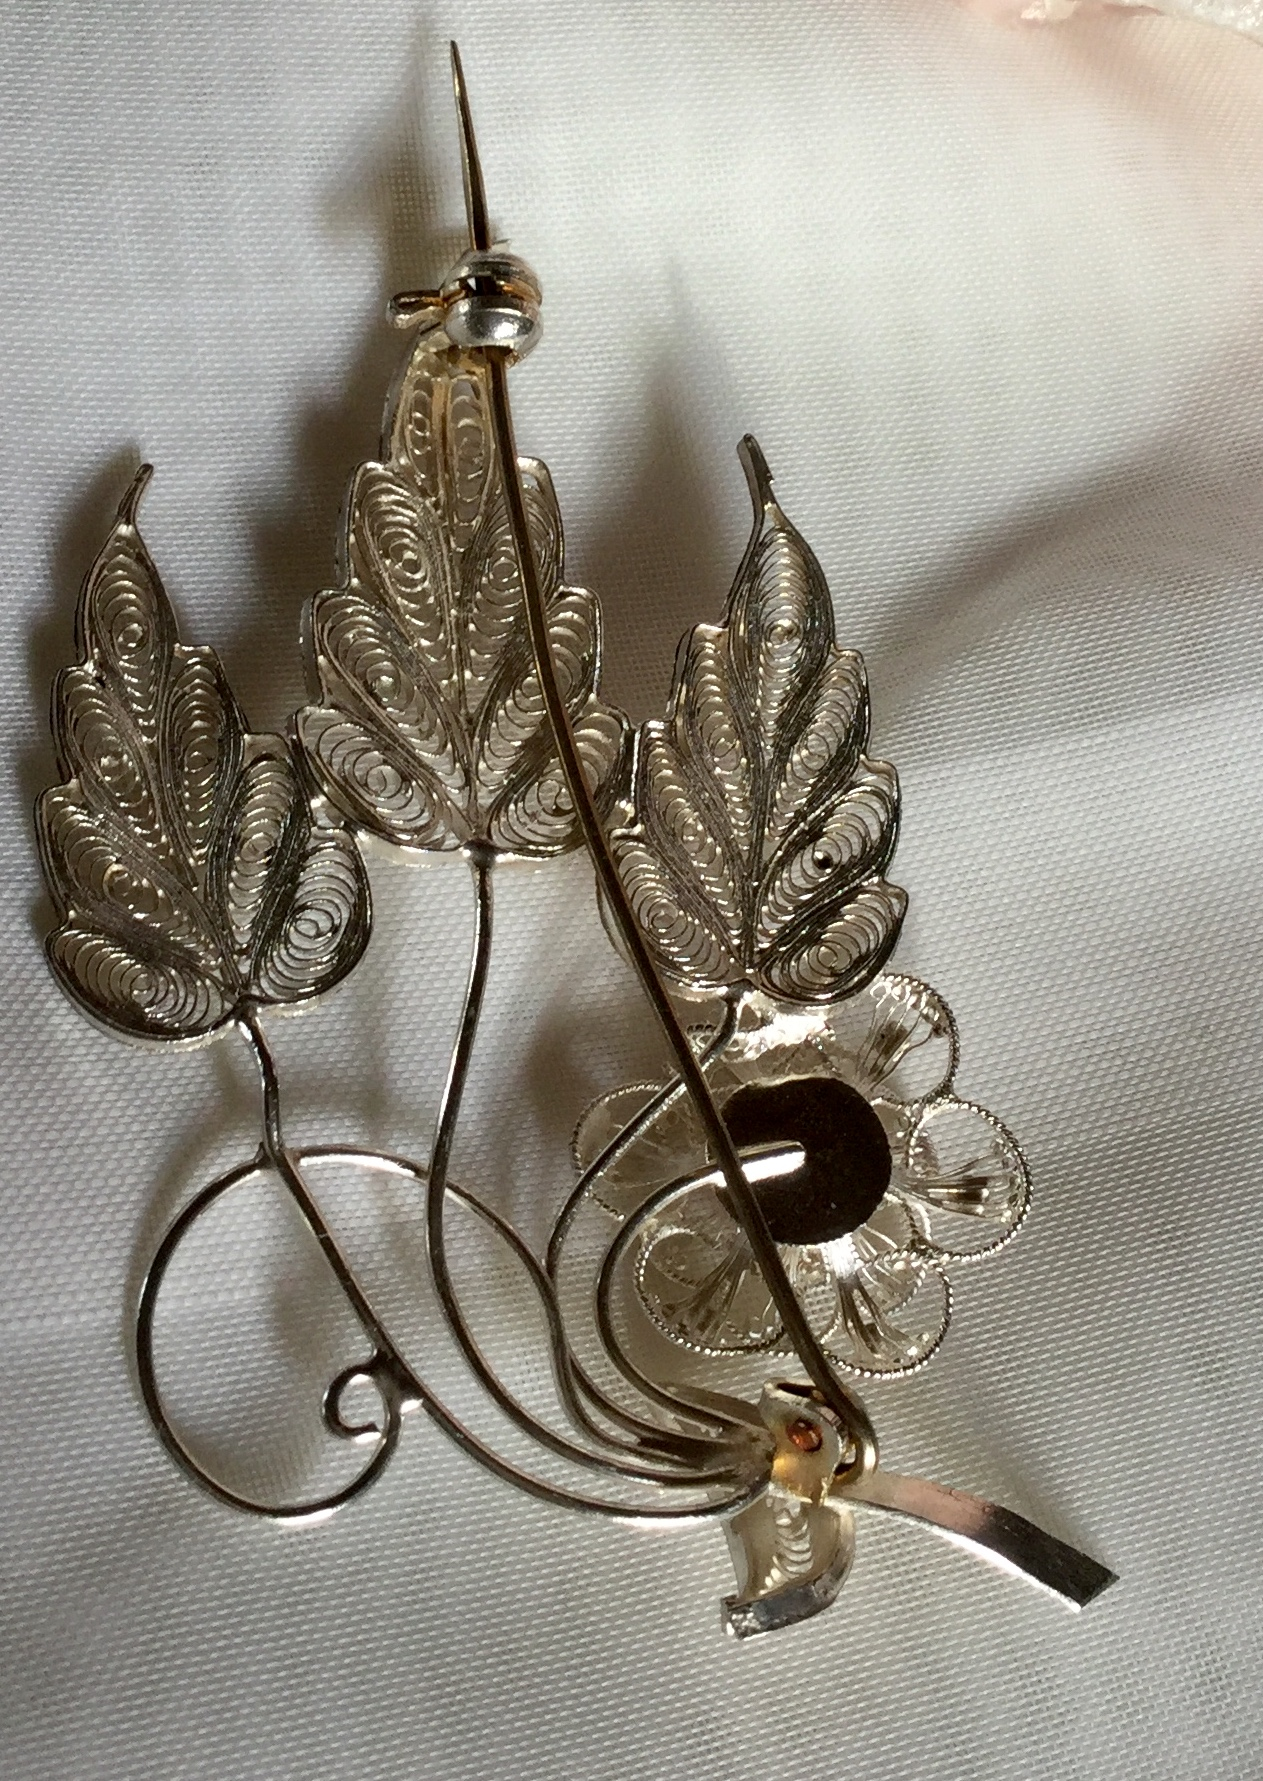 Finesse Vintage Malta Brooch Flower and leaf 7.57 gram scarf pin shawl pin - Image 3 of 4